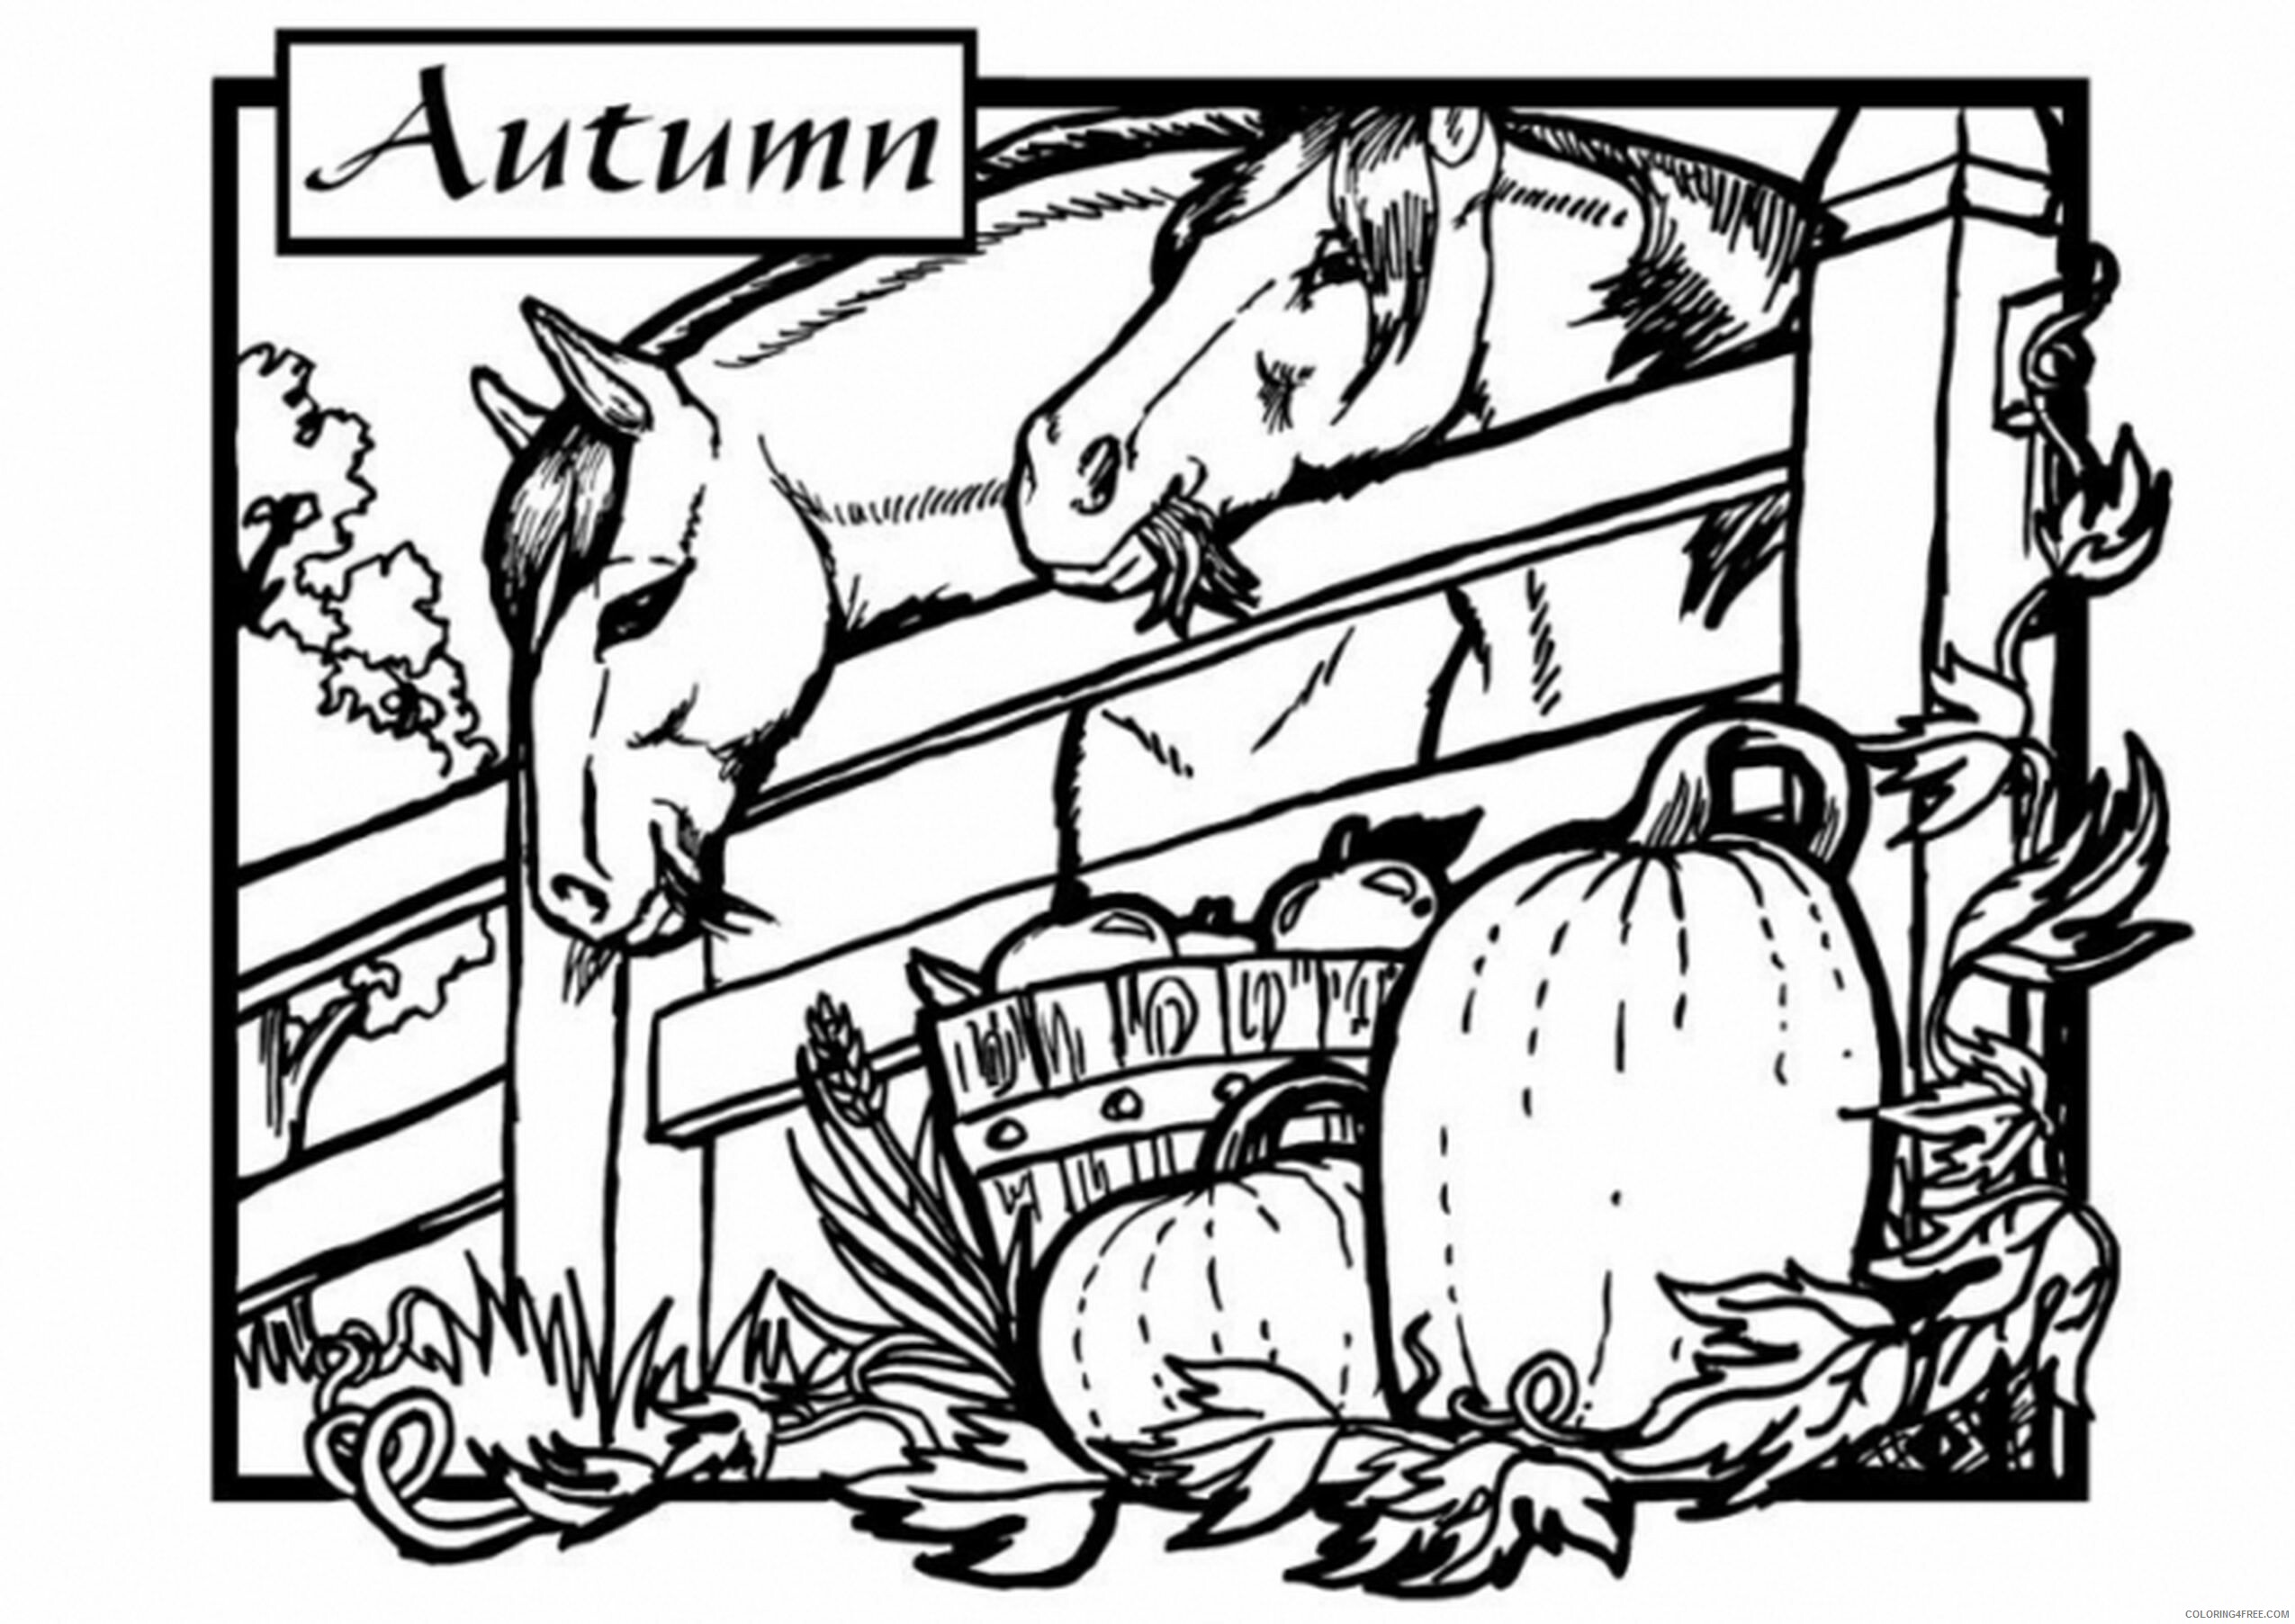 Adult Coloring Pages Autumn on the Farm for Adults Printable 2020 009 Coloring4free